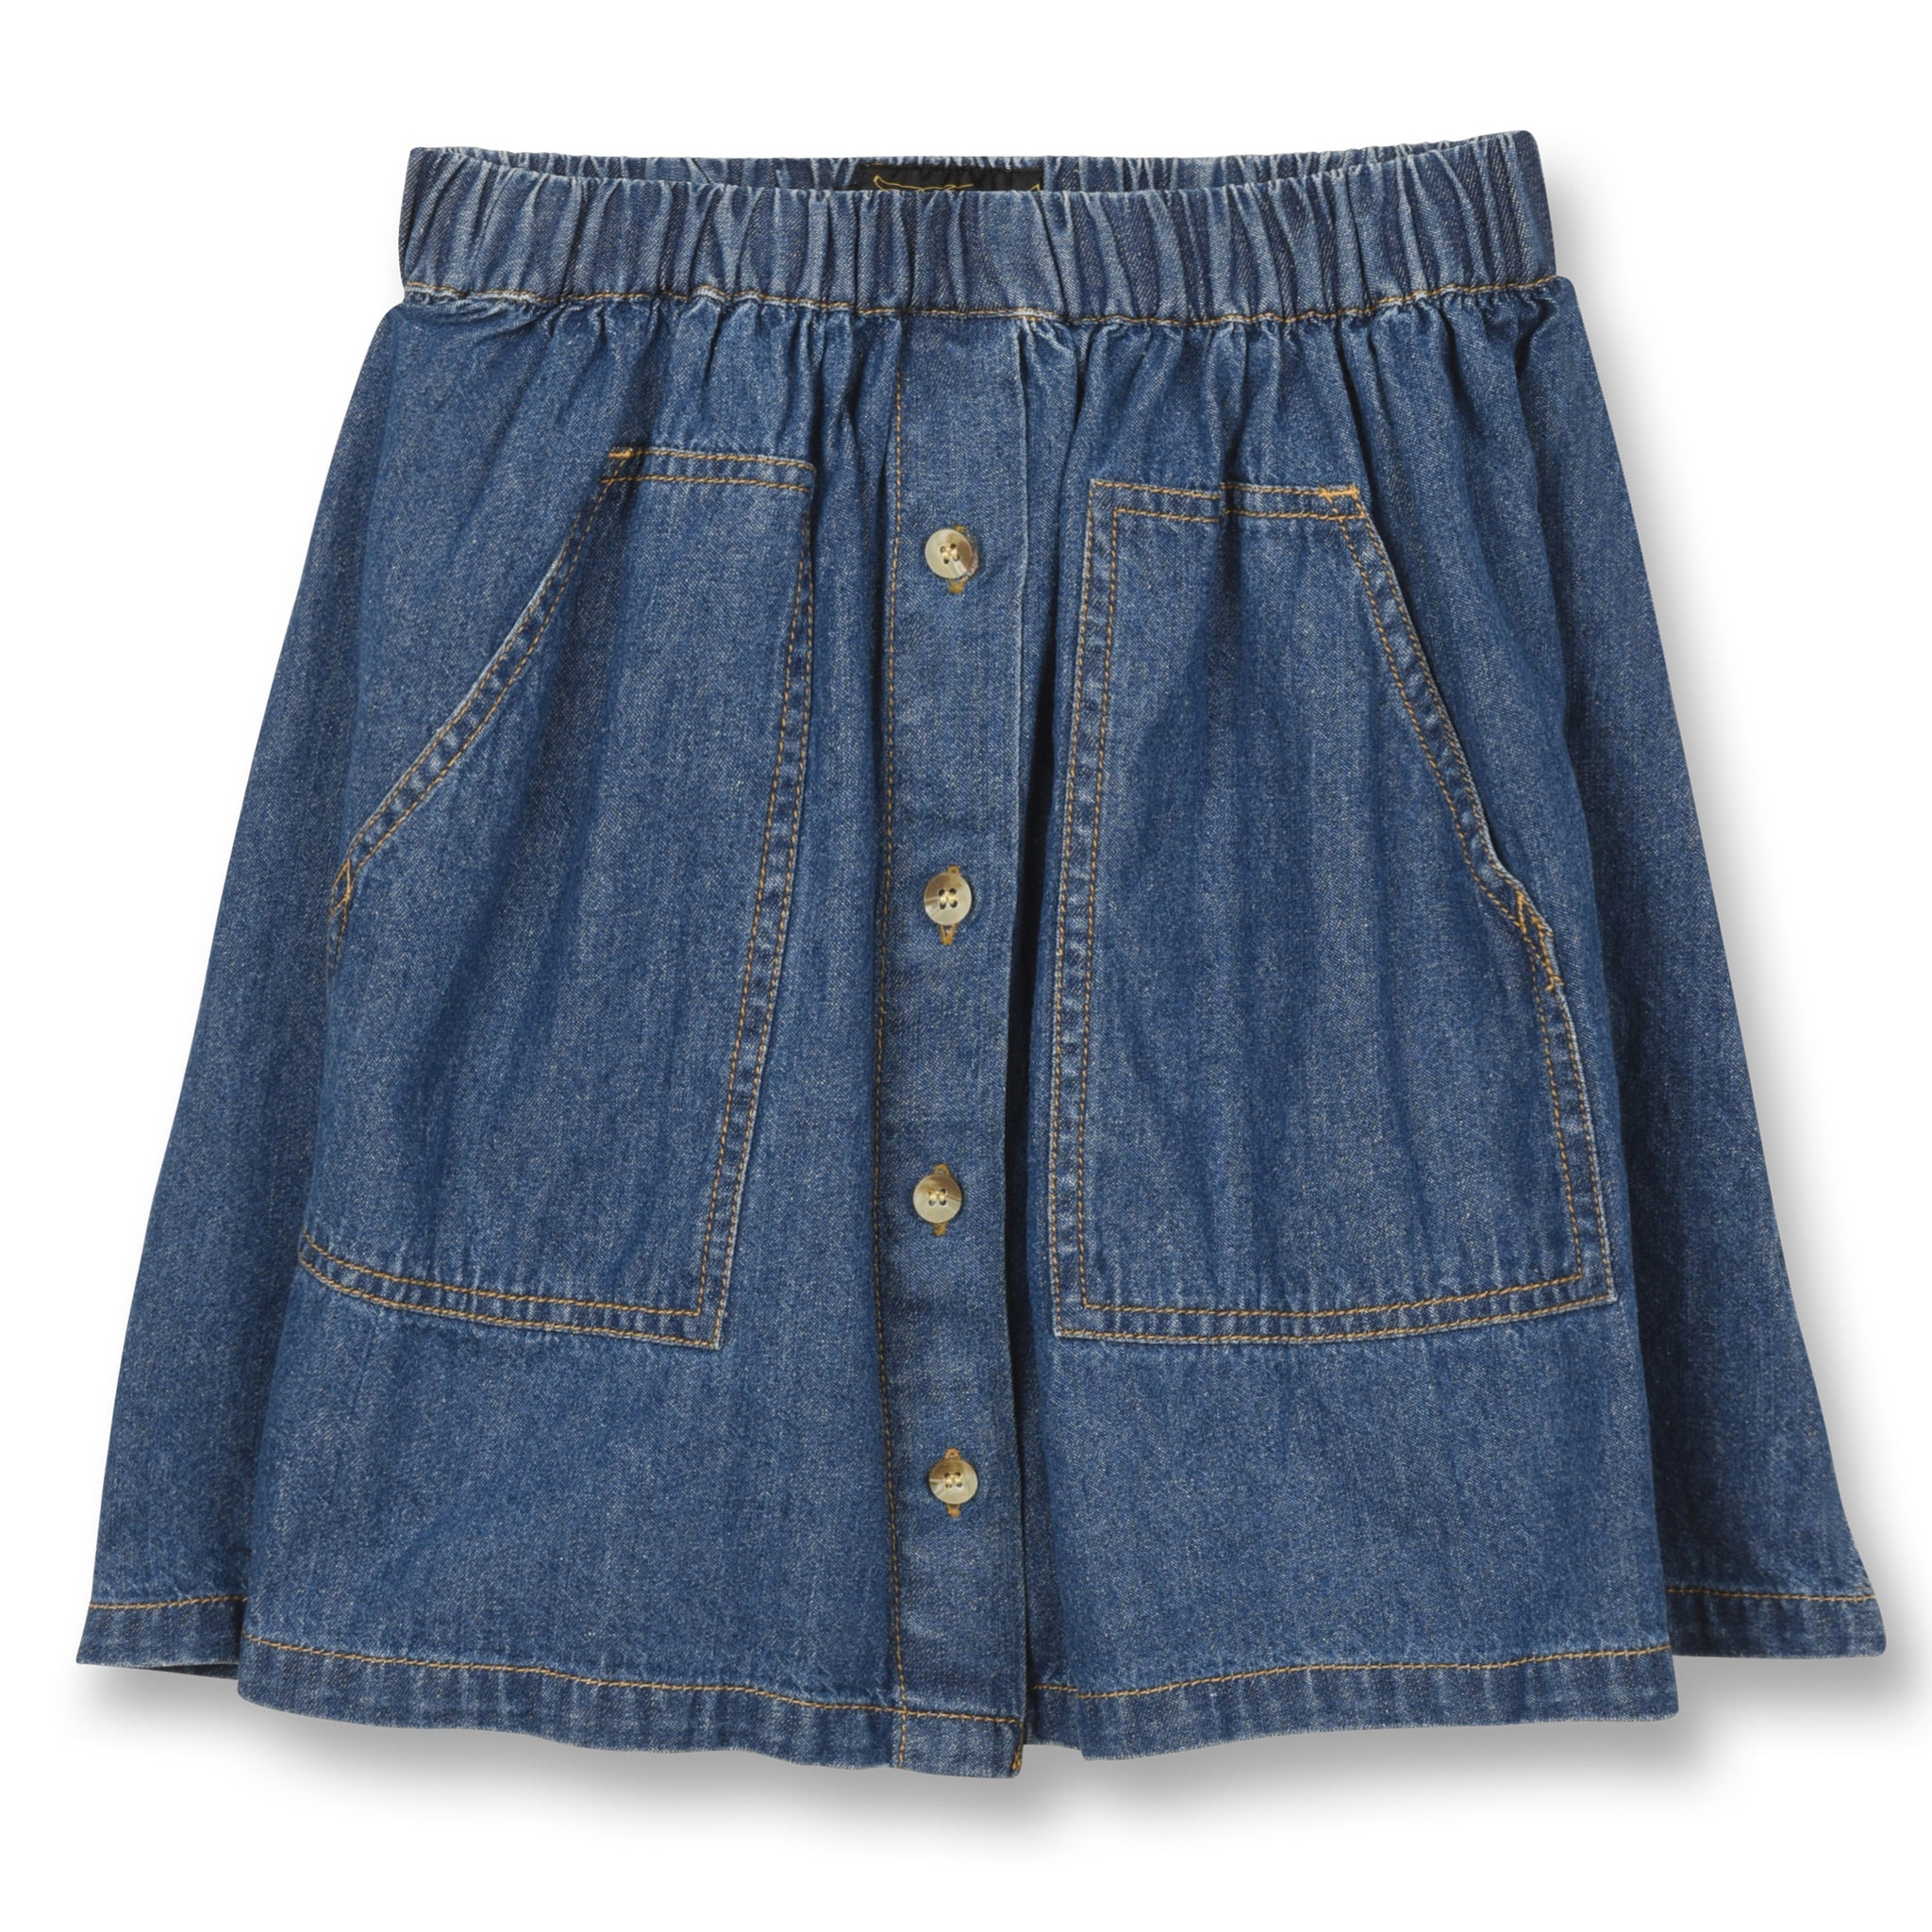 ASHBY Dark Blue Denim - Skirt 1